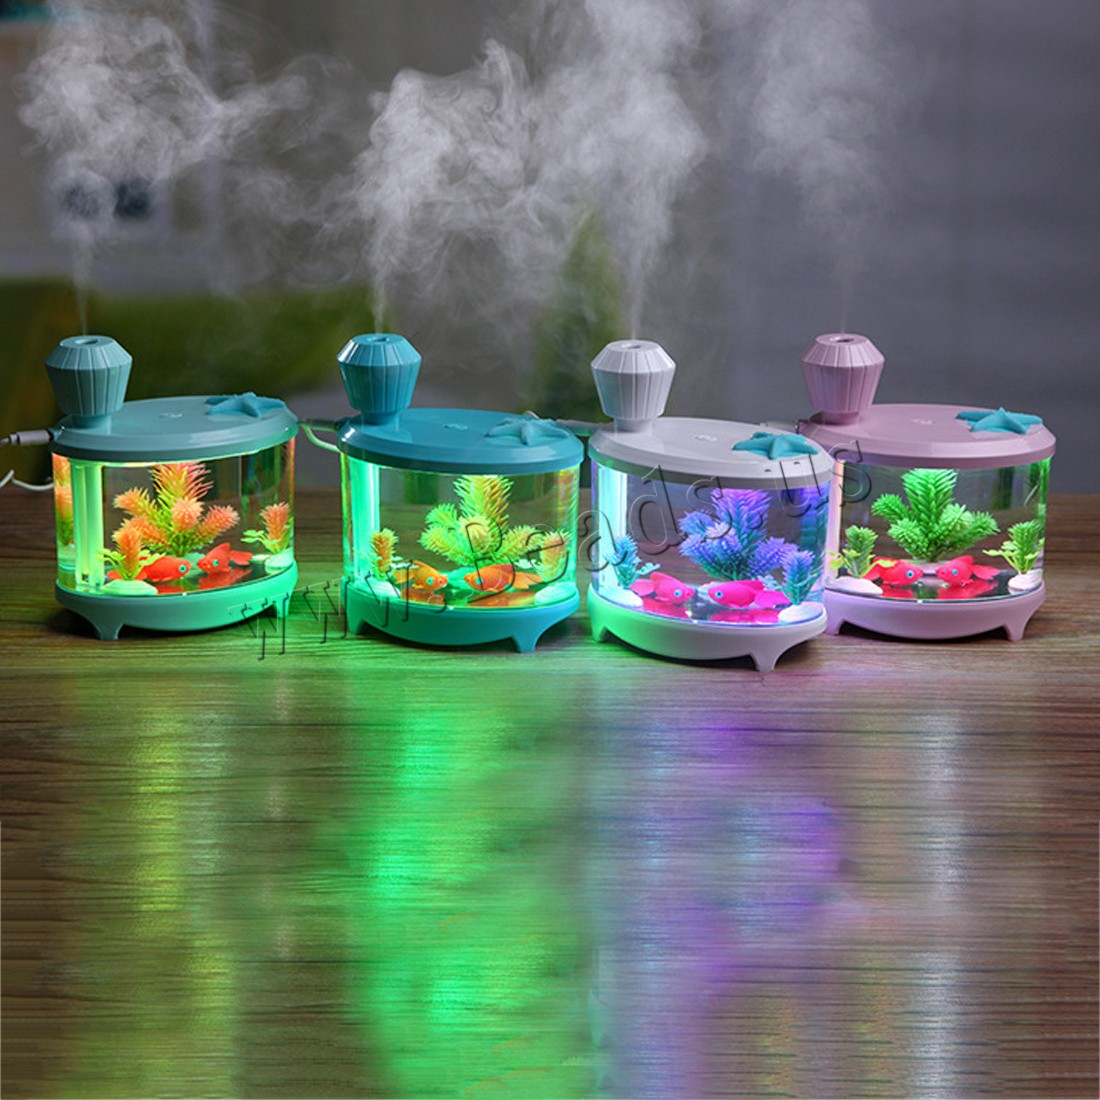 Buy Humidifiers & Accessories ABS Plastic Silicone 2-8hours' timing & less 1L & USB interface & LED colors choice 145x125x86mm Sold PC